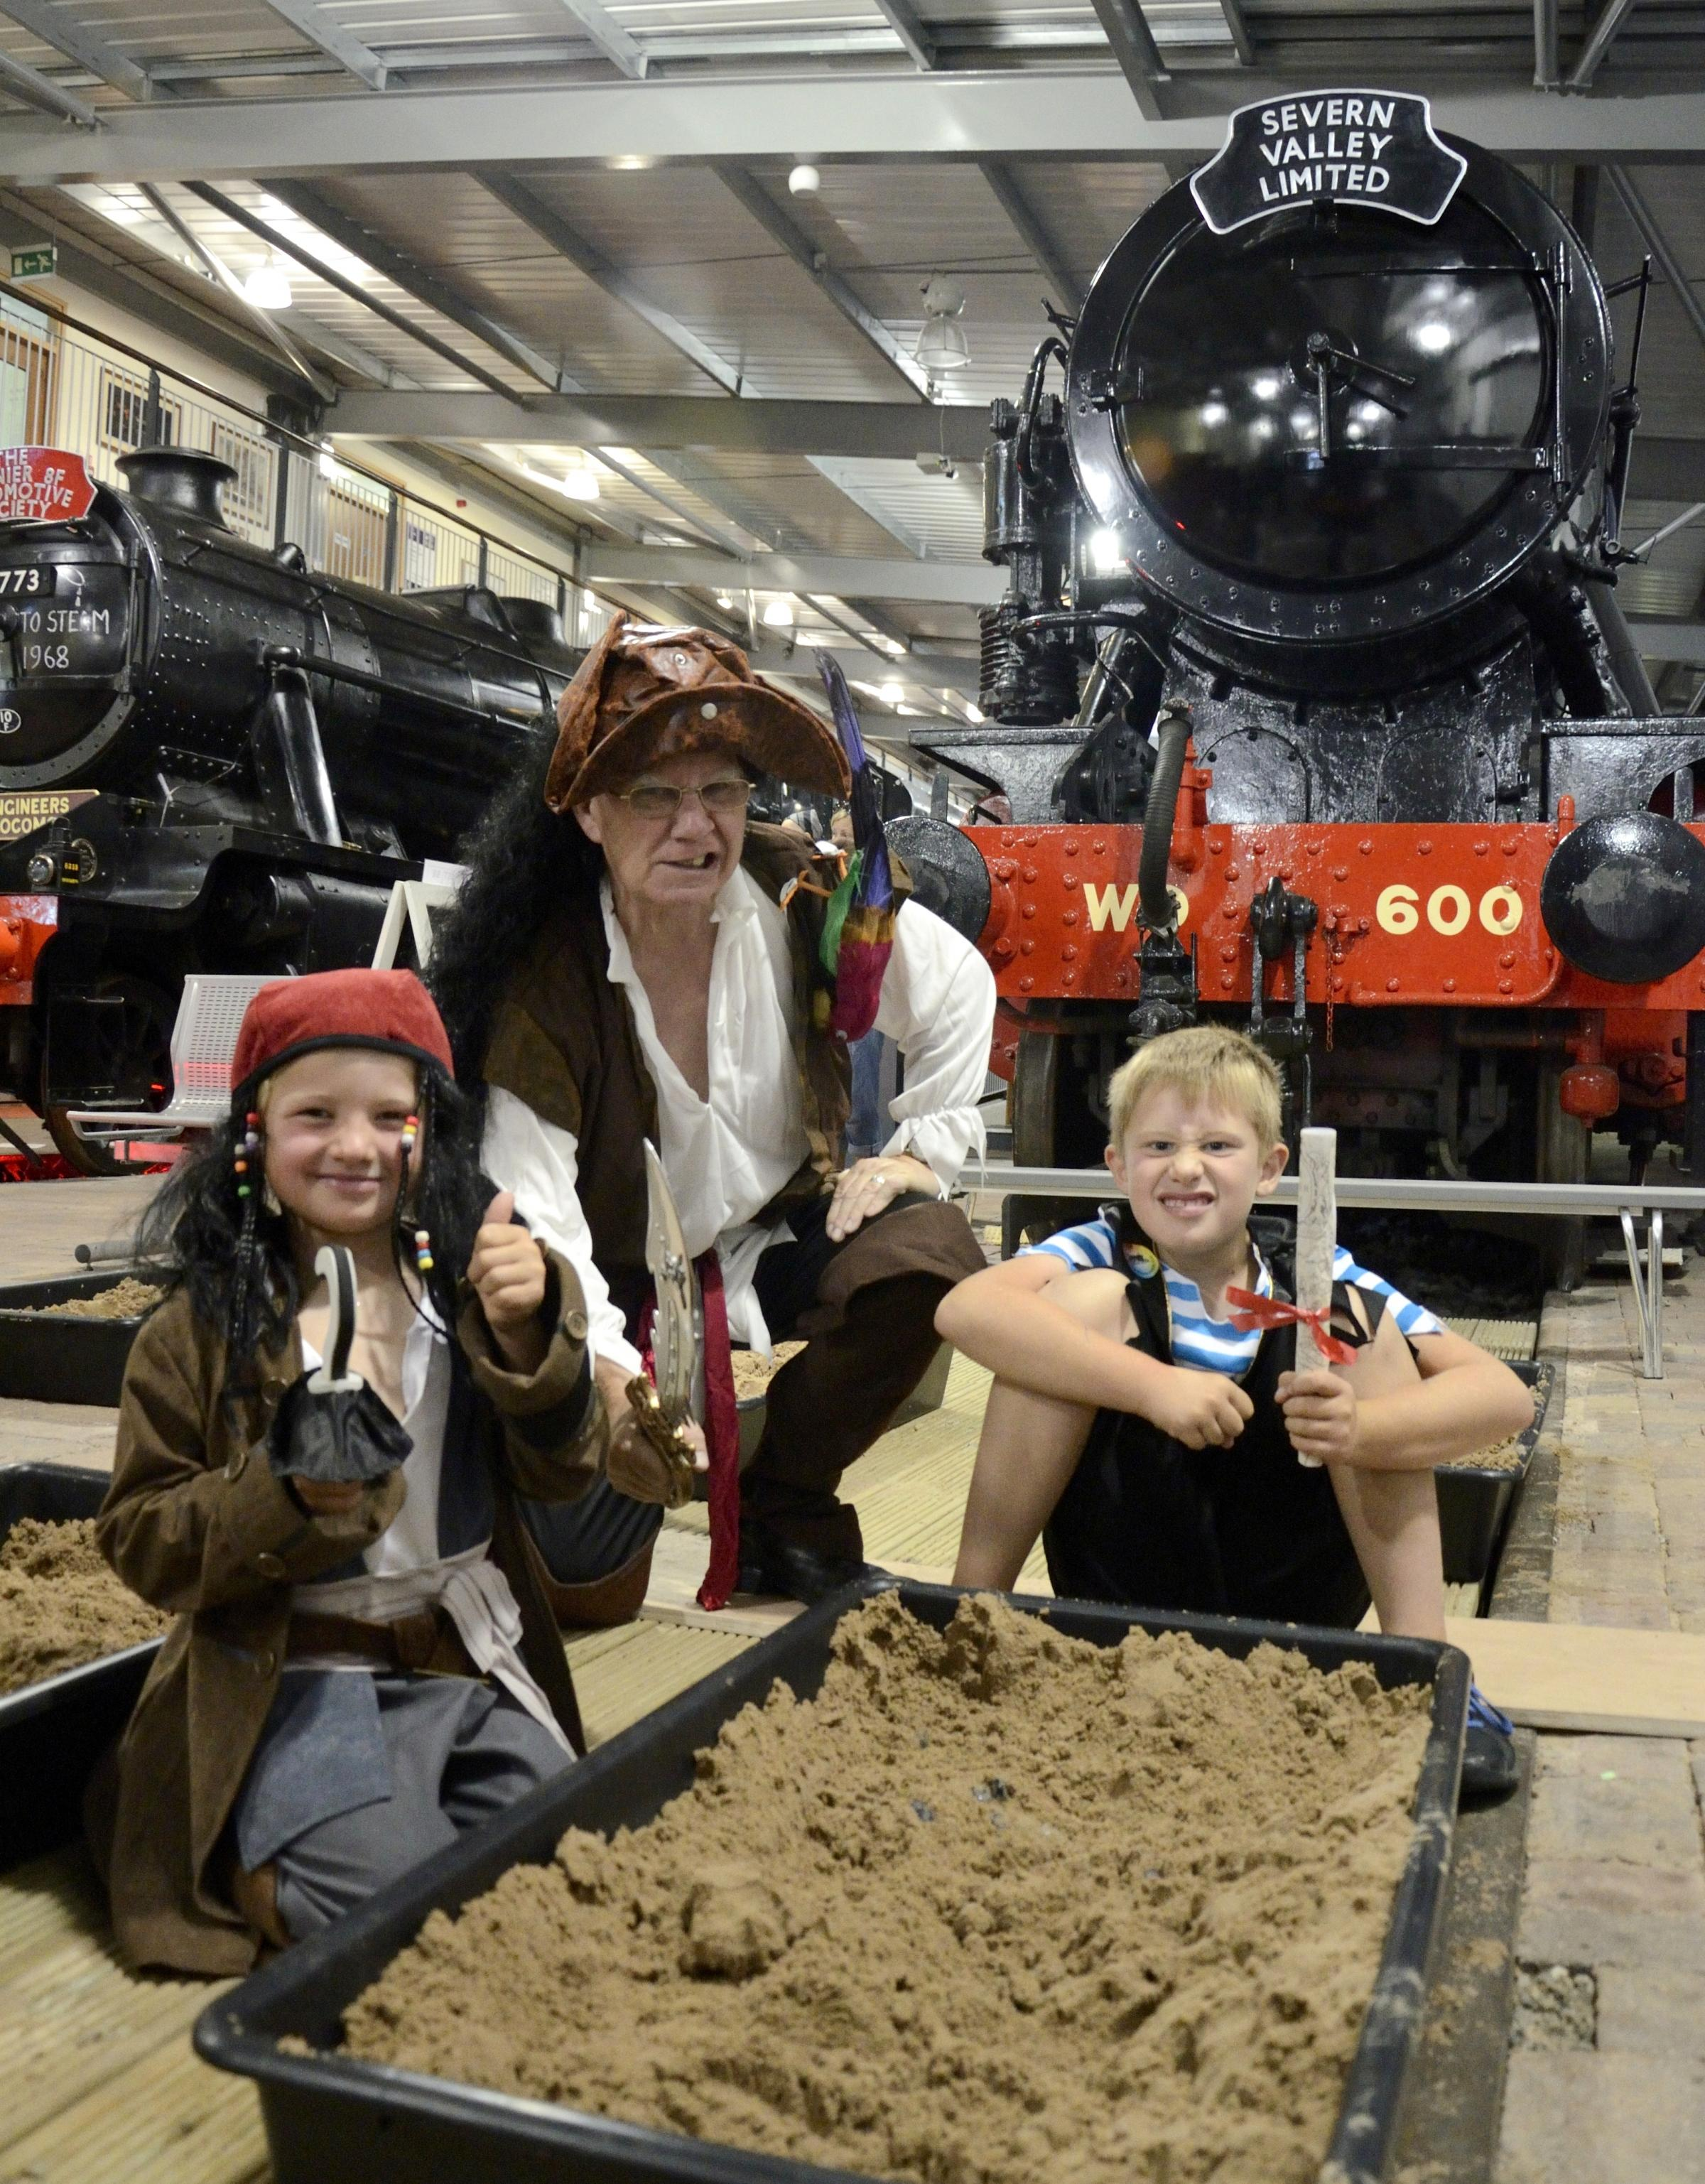 William Murdock, aged seven, Charlie Murdock, four, and 'Captain' Geoff (Engine House volunteer) enjoying activities at The Engine Hous